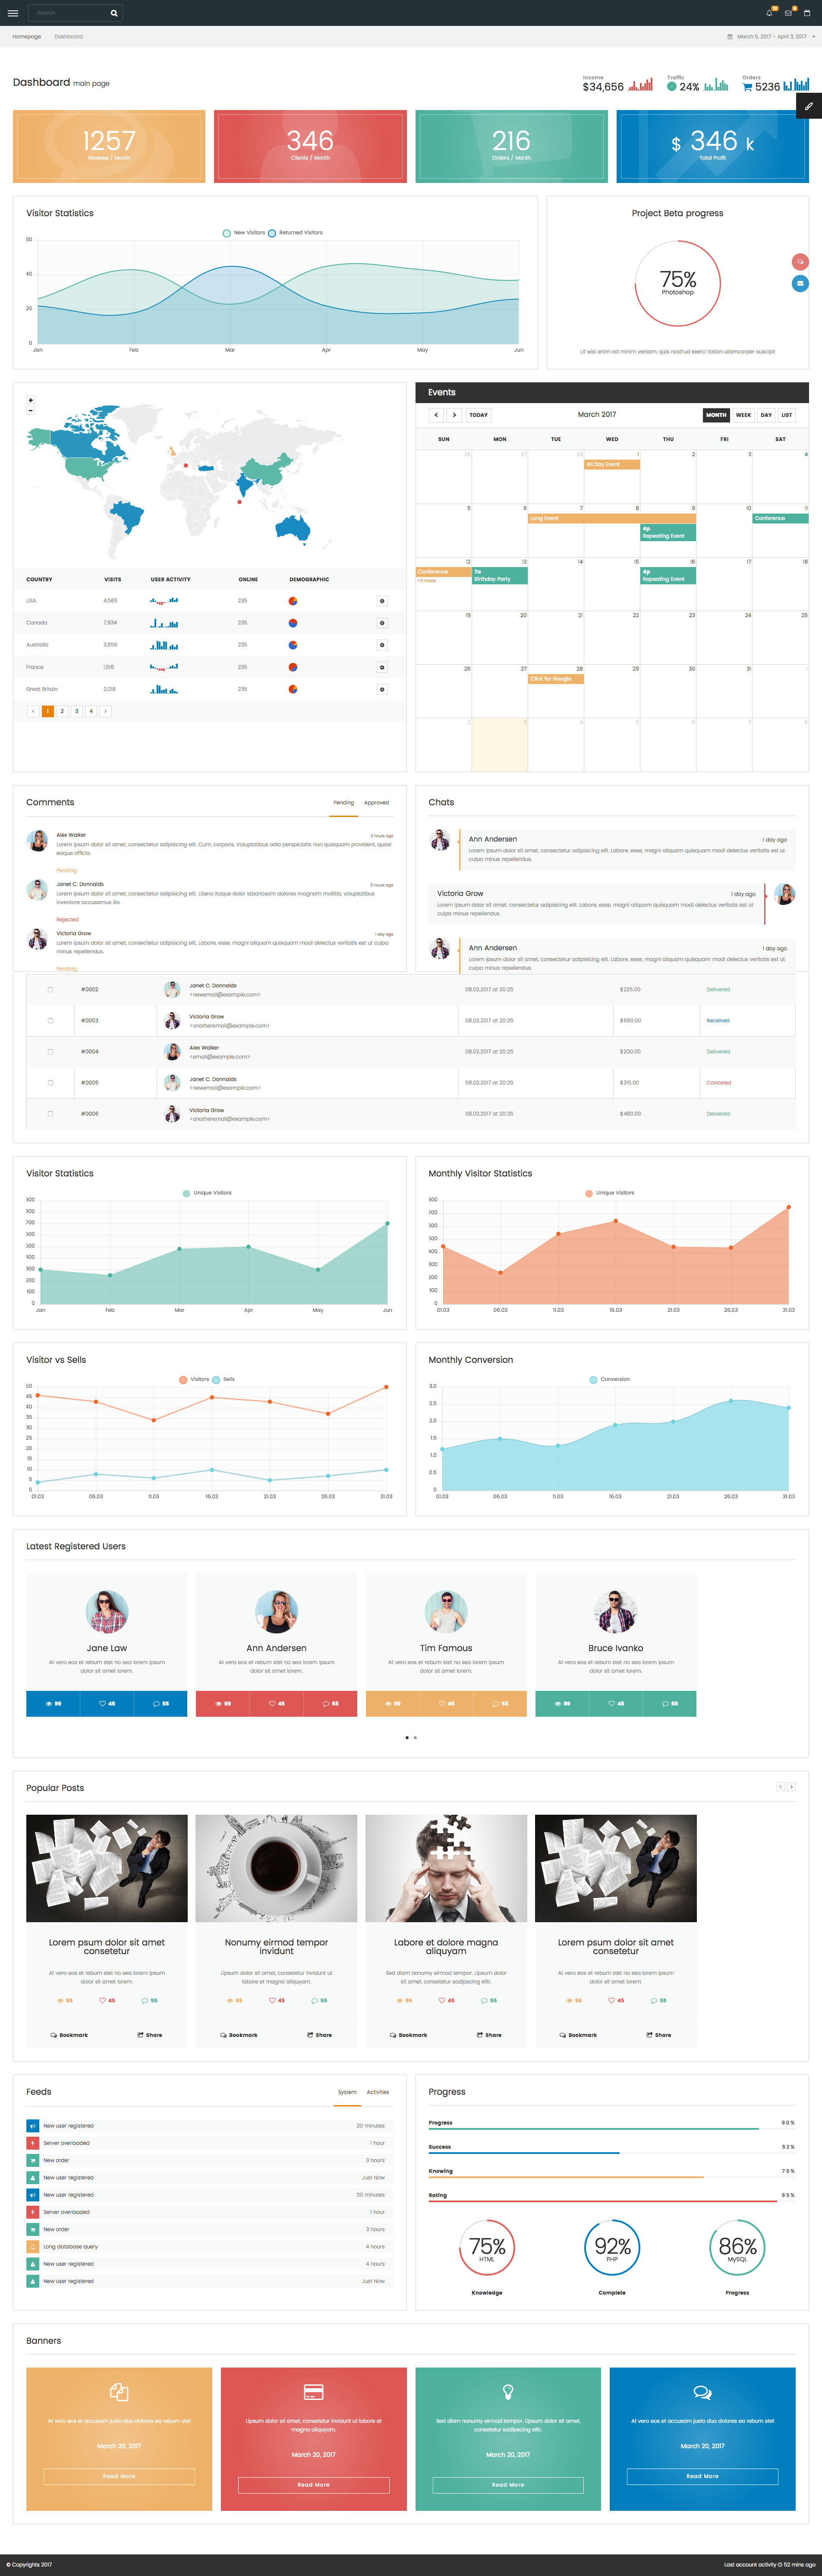 Twitter bootstrap templates 1417475 - hitori49.info